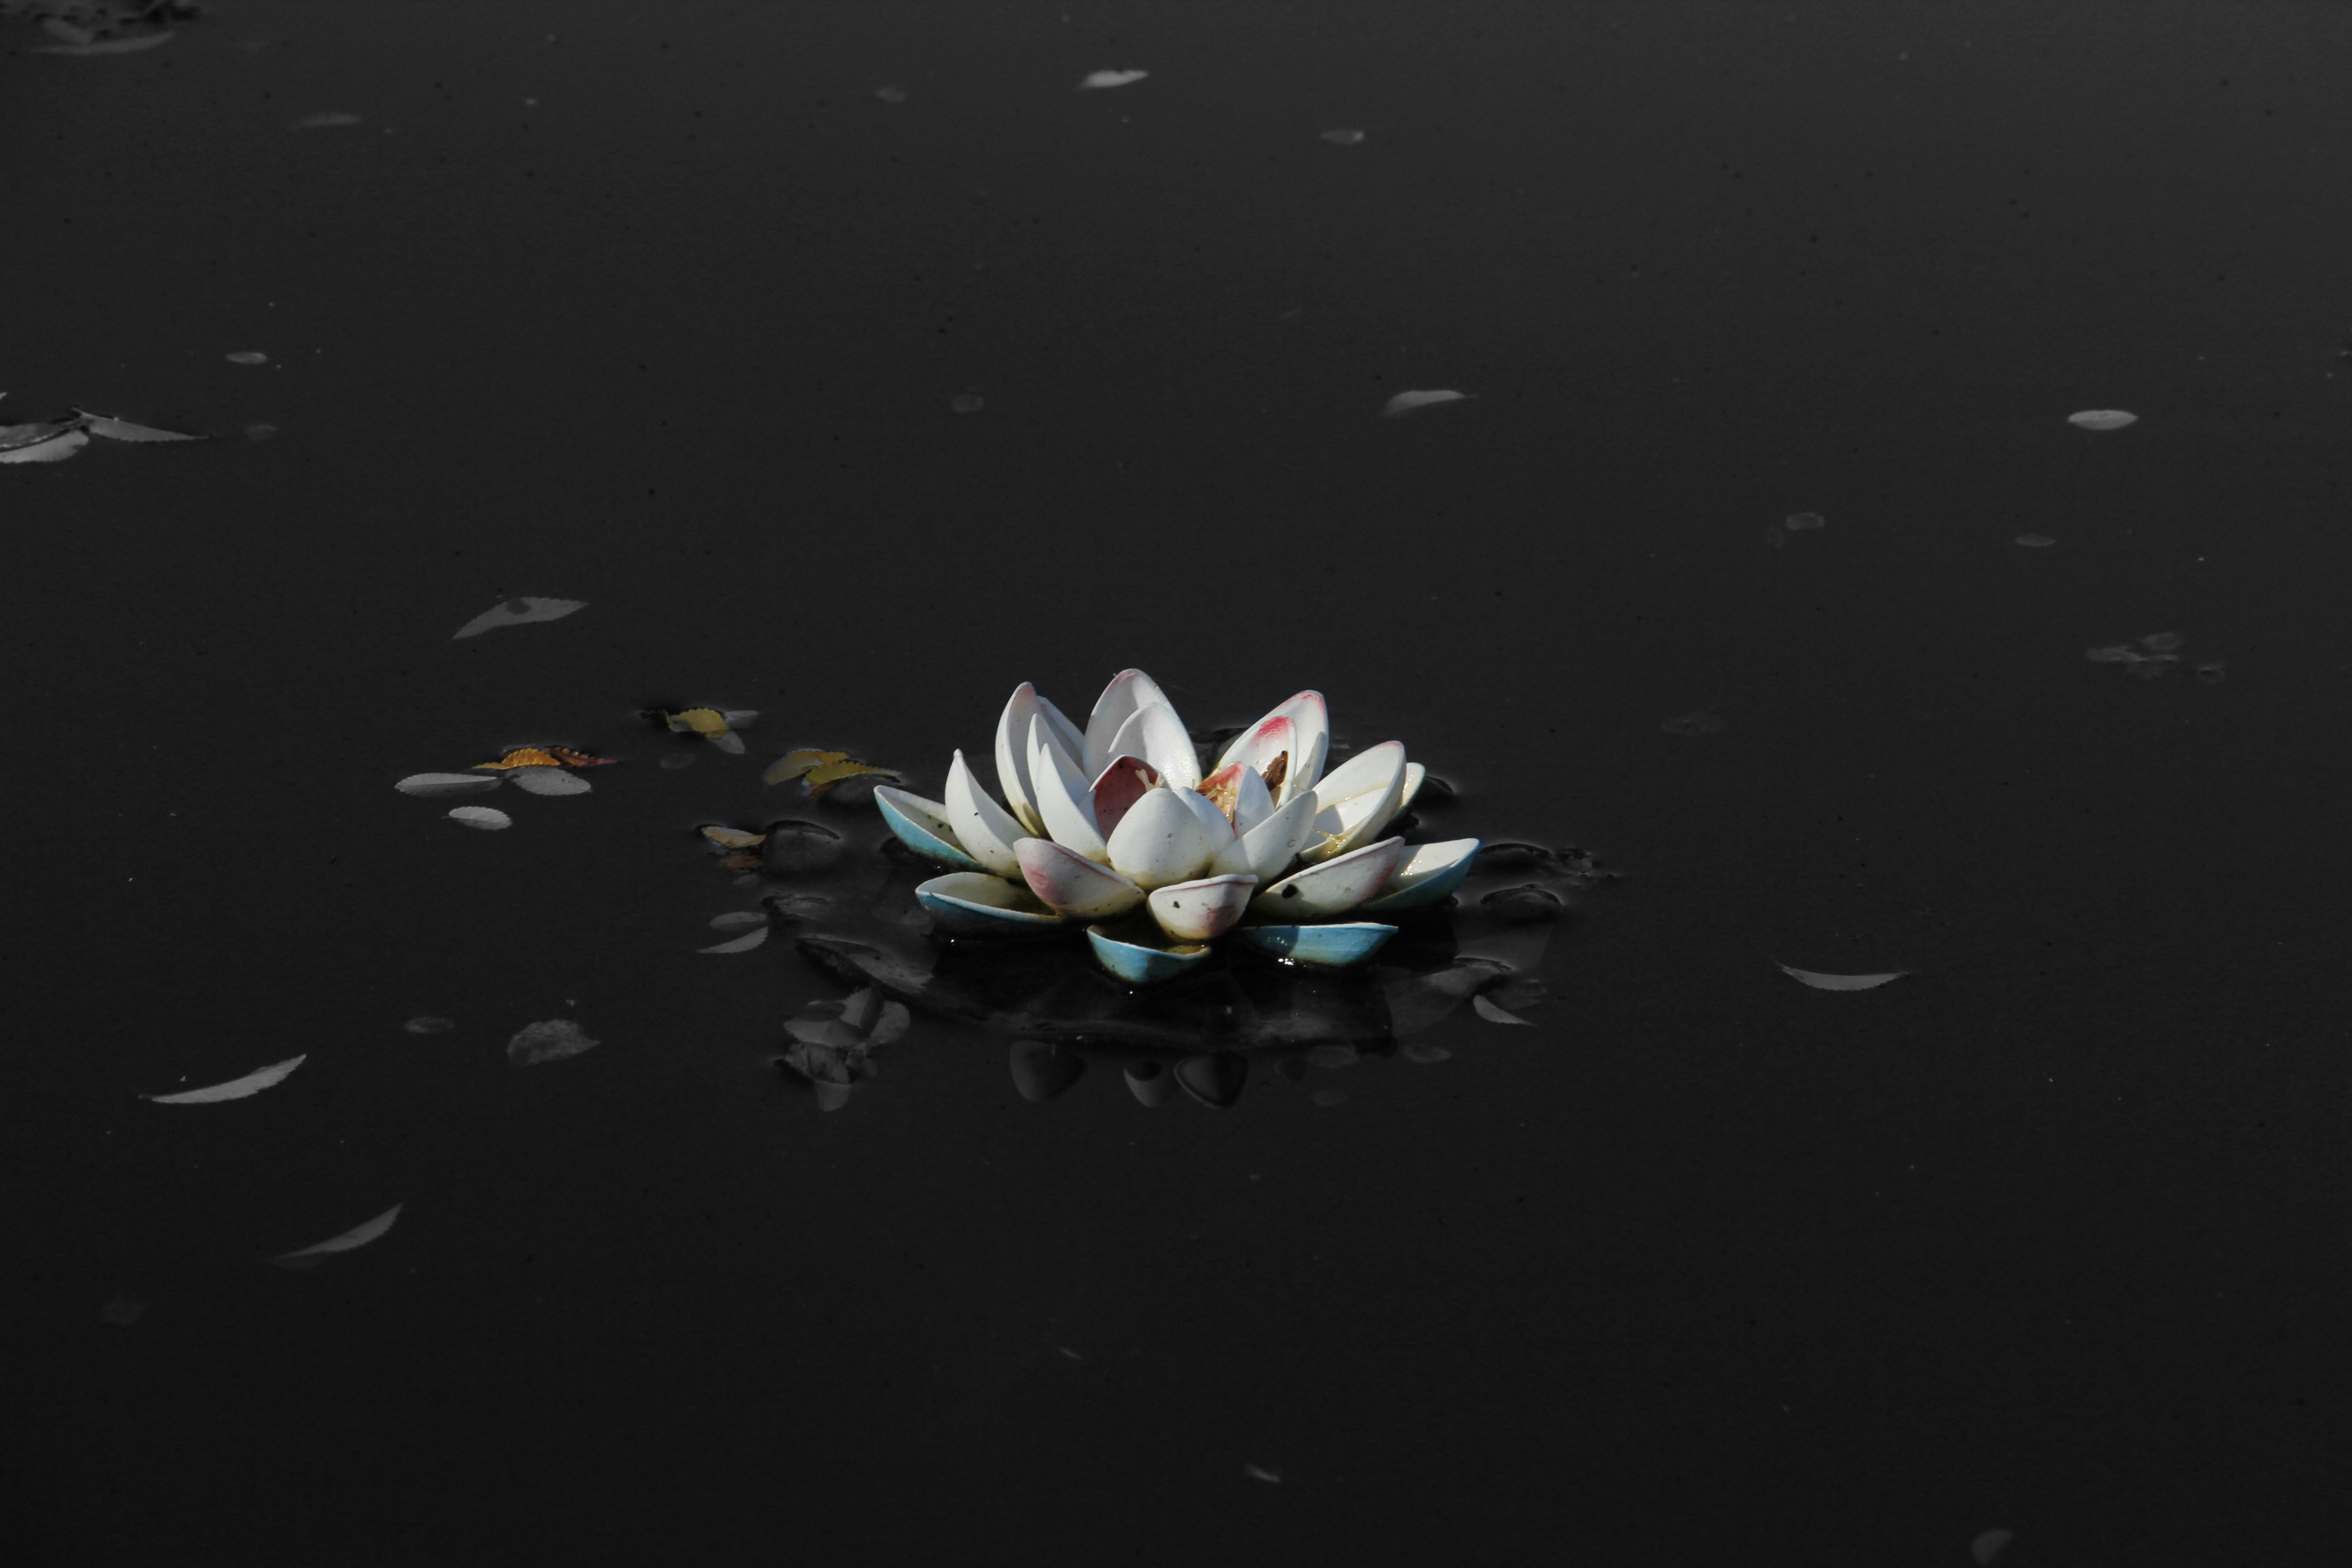 Black Lotus Flower Wallpapers Hd Resolution Natures Wallpapers In